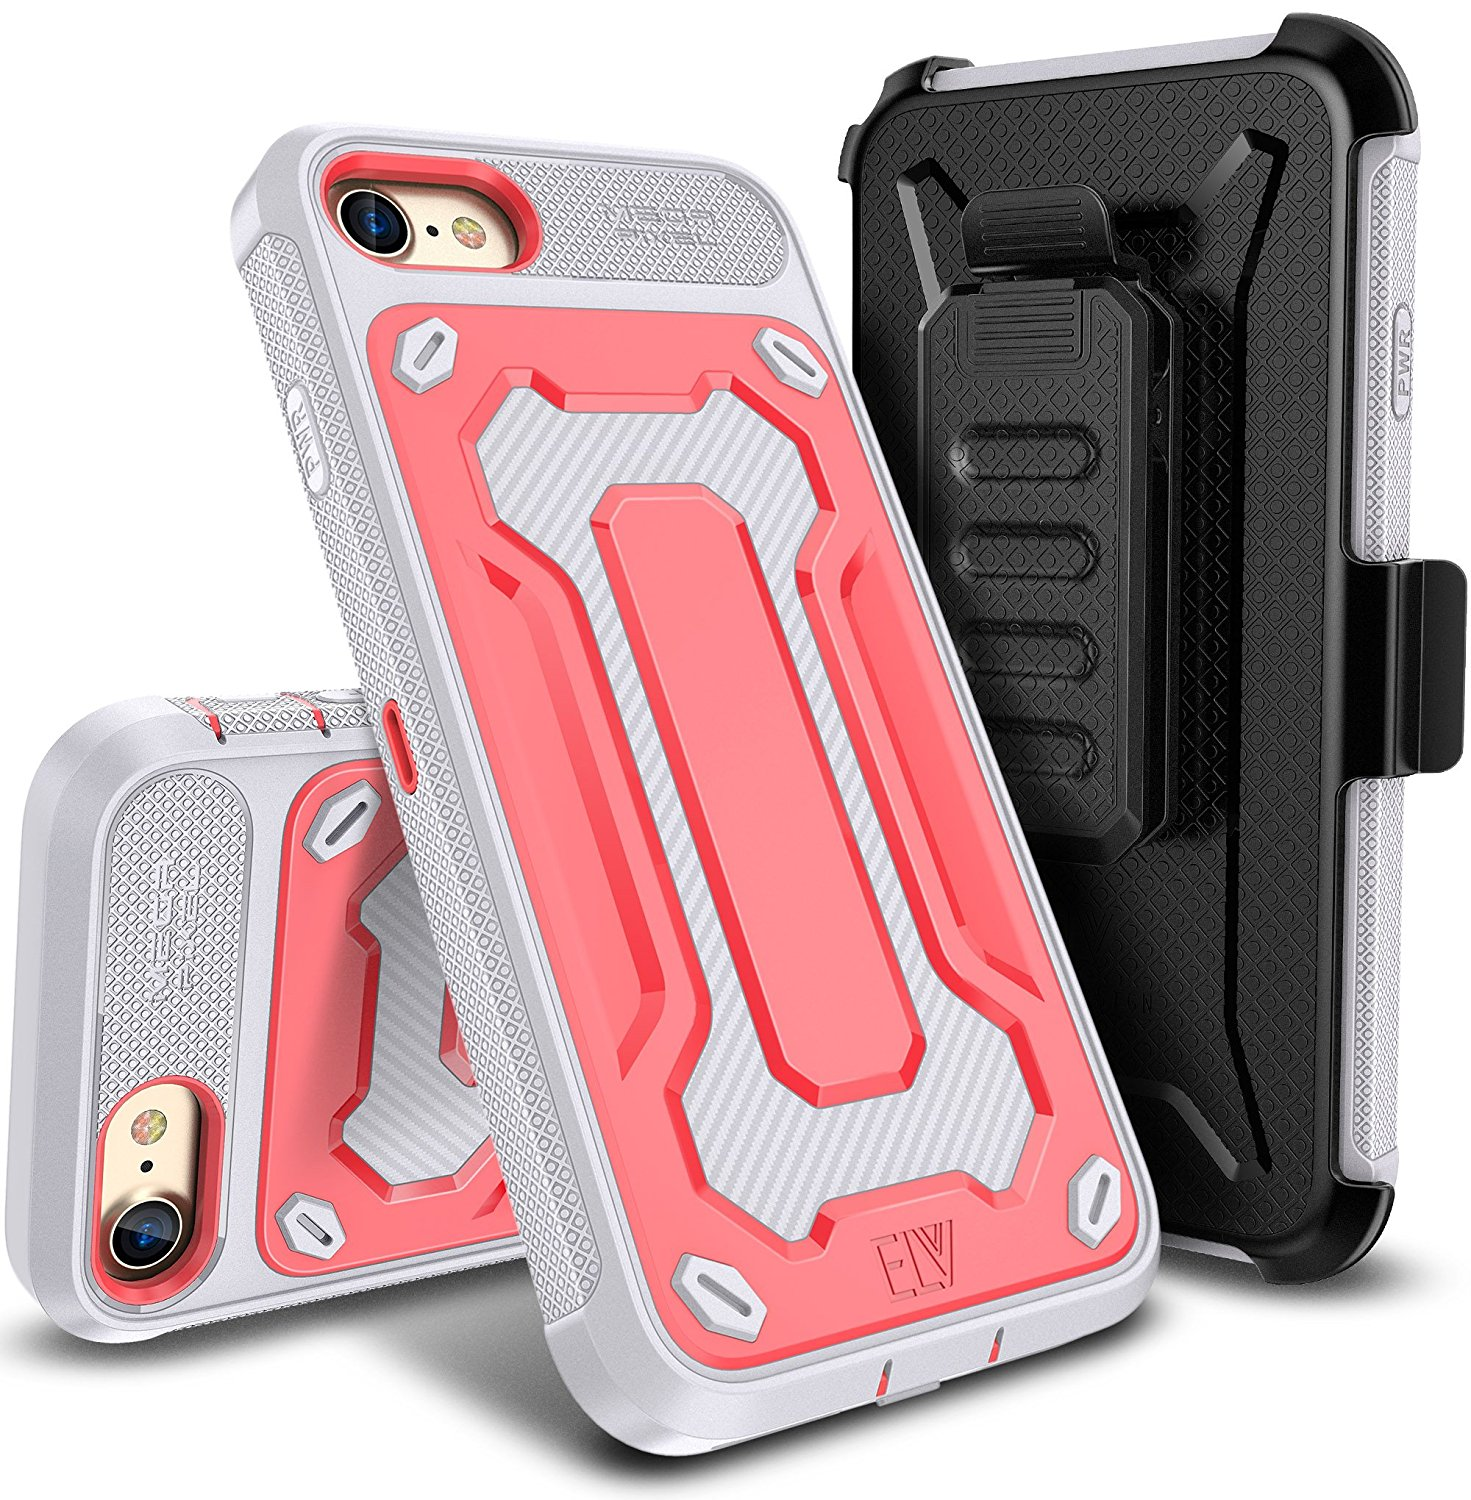 E LV iPhone 7 Case Belt Swivel Clip / Kickstand Dual Layer Armor Holster Defender Full Body Protective Case Cover for Apple iPhone 7 BLACK